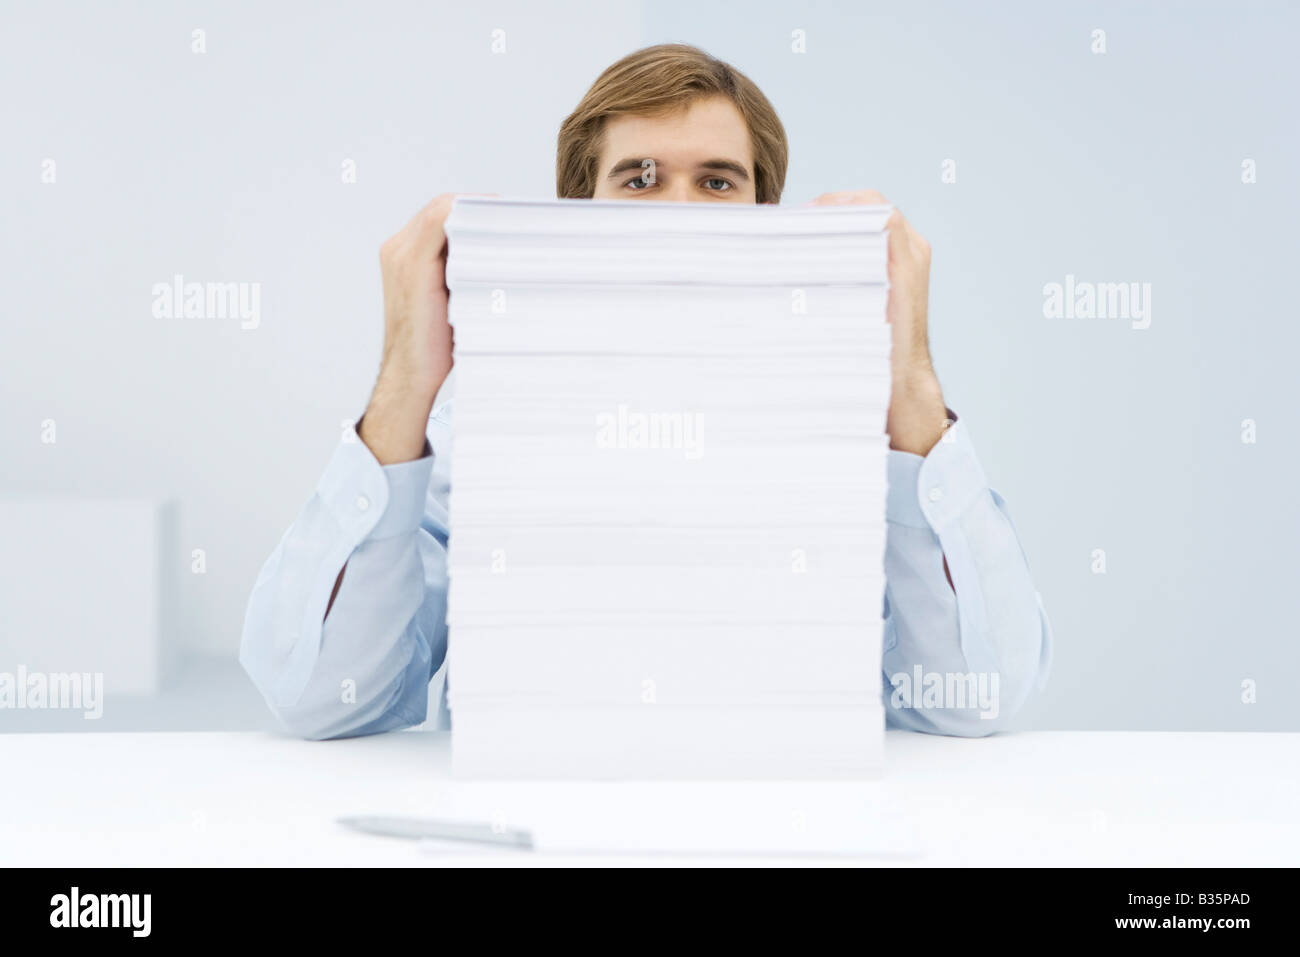 Man peering over tall stack of paper - Stock Image